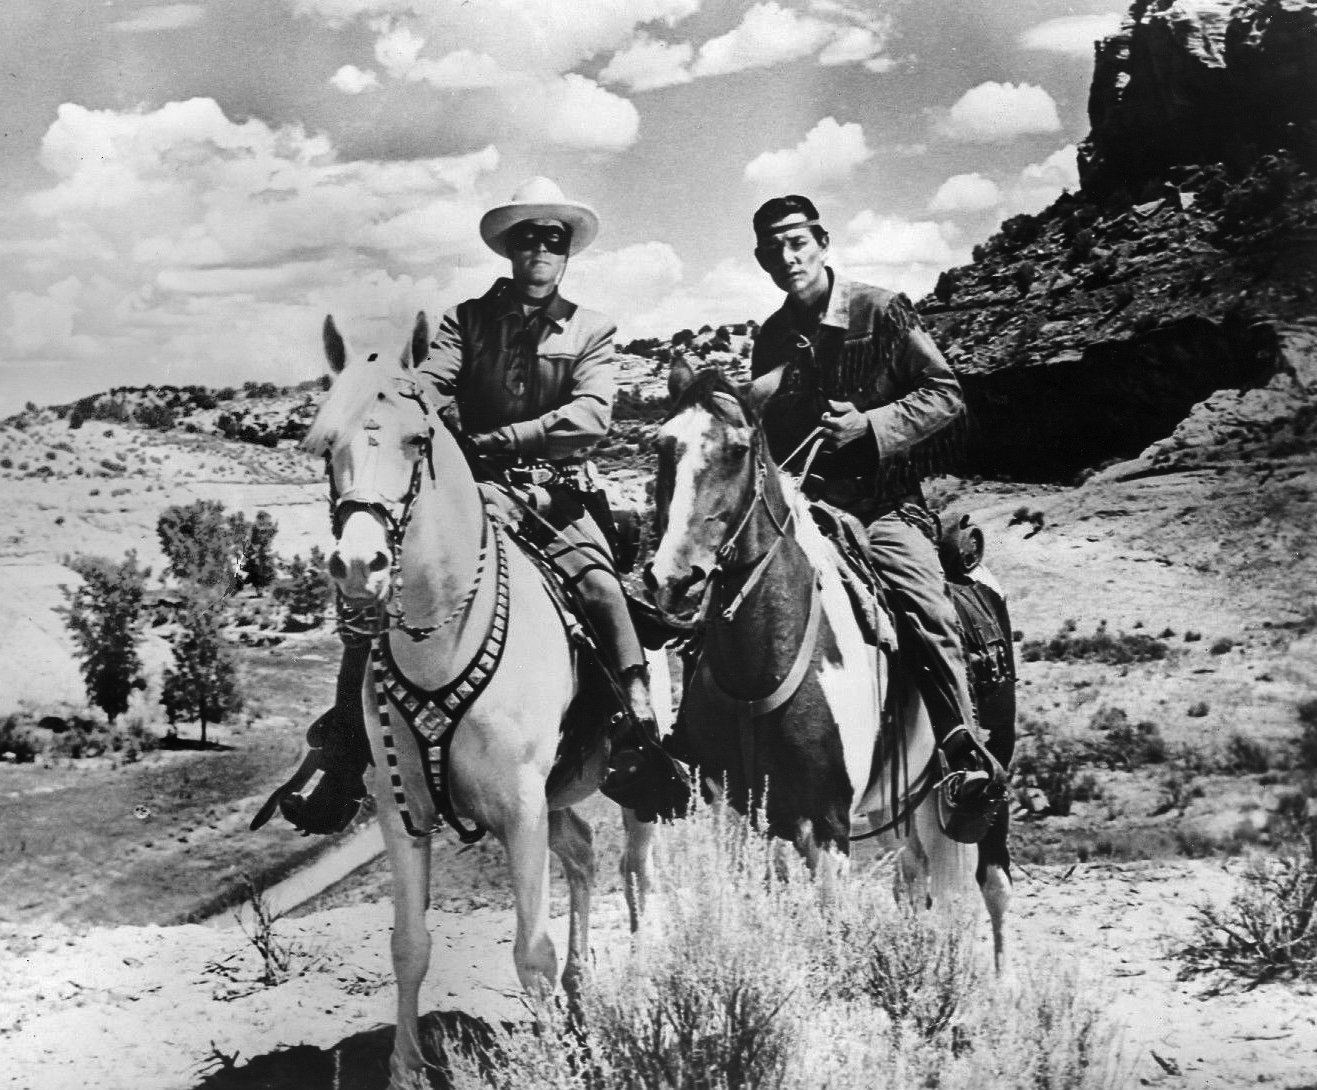 """Clayton Moore as the """"Lone Ranger"""" and Jay Silverheels as Tonto in 1956.   Source: Wikimedia Commons."""